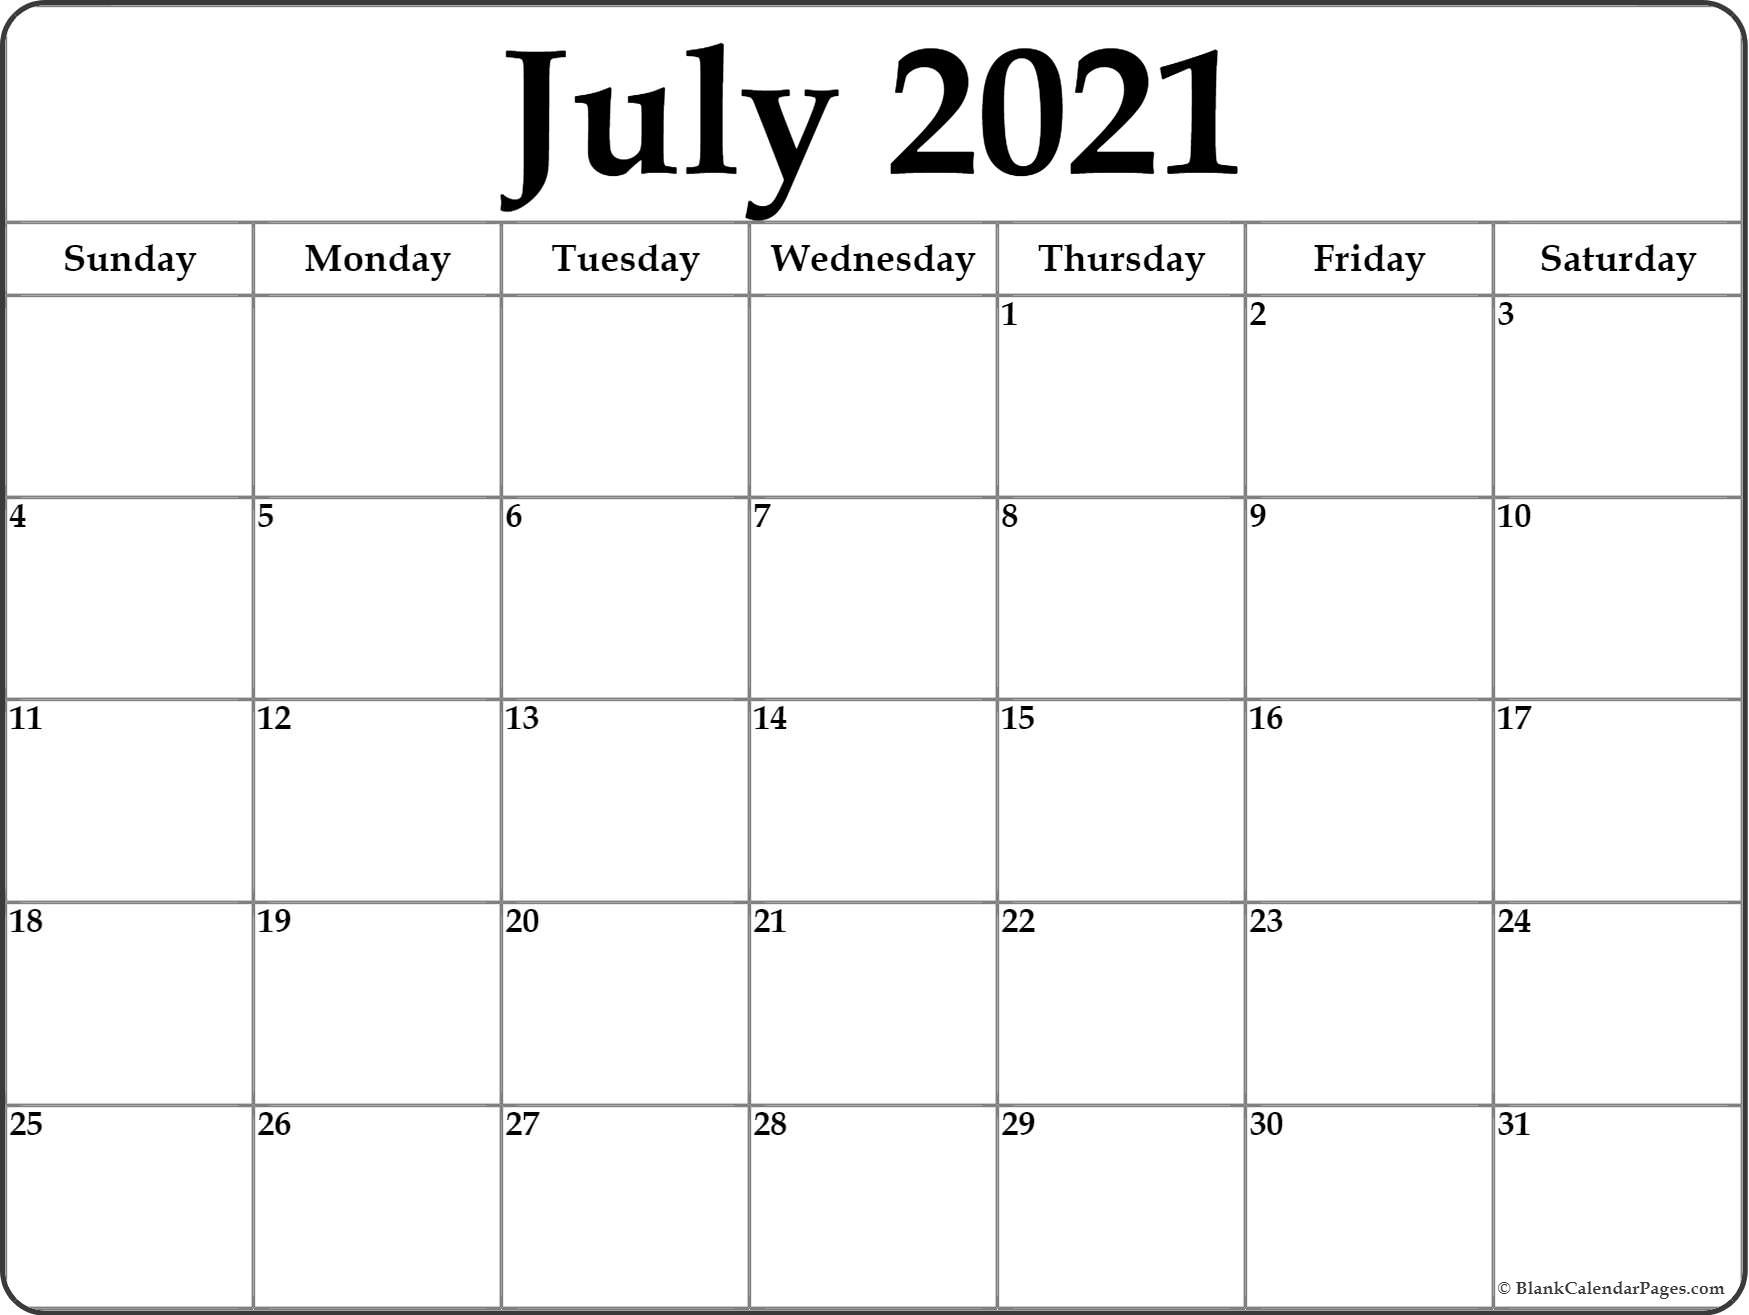 July 2021 Calendar | Free Printable Monthly Calendars  July 2021 12 Months